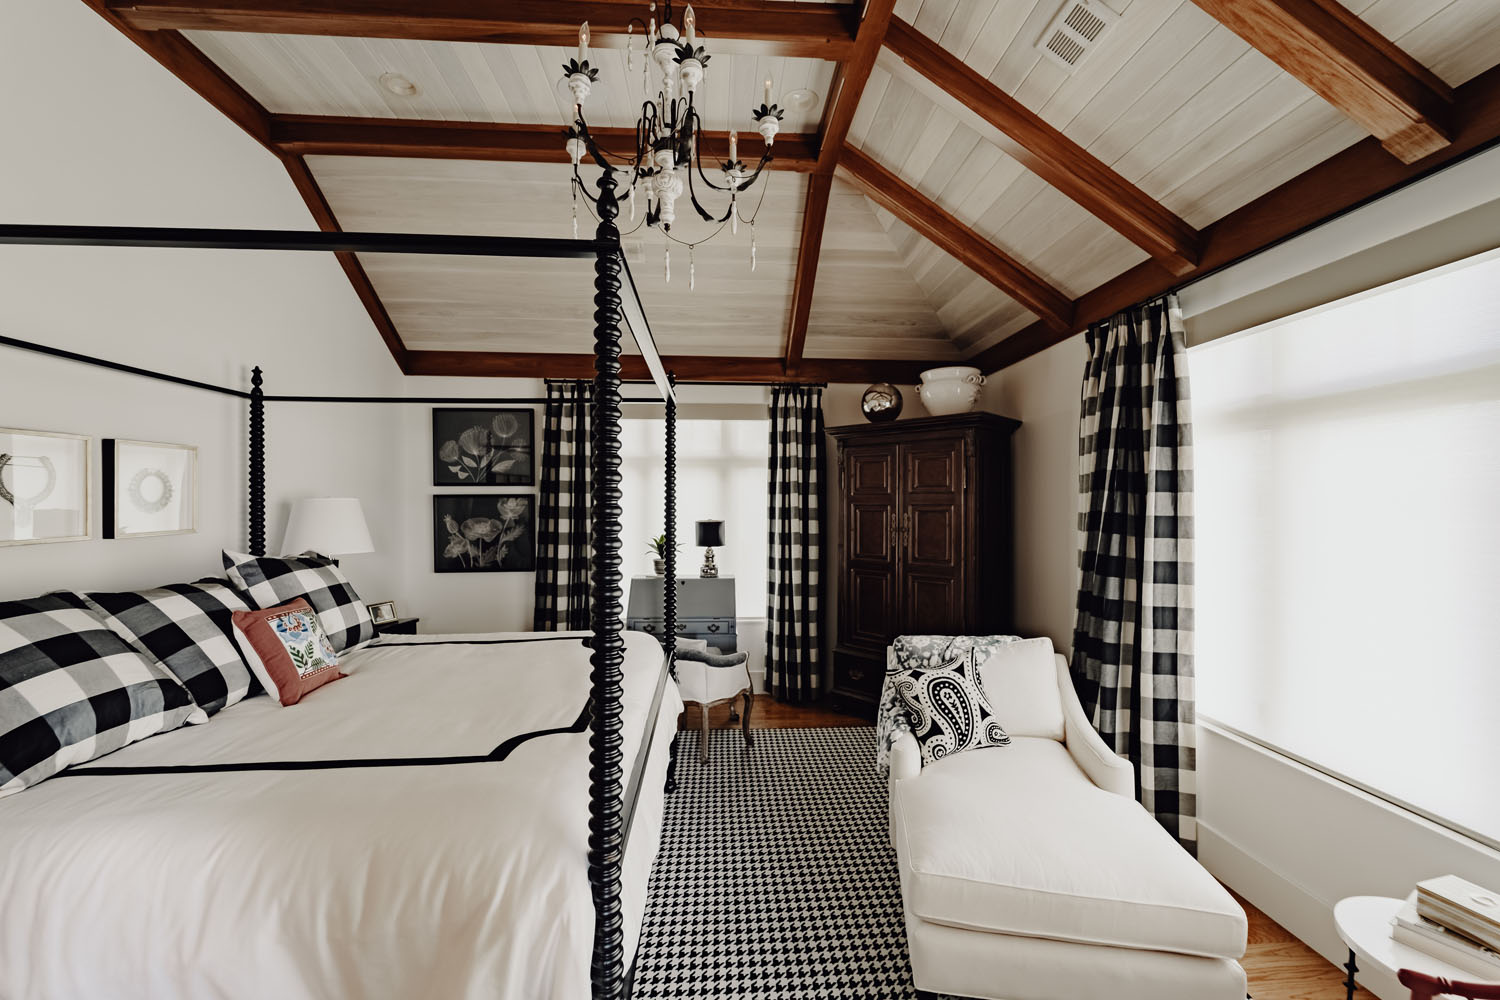 Custom bedroom with exposed wooden beams and high-end finishes throughout by LA Construction custom home builders.